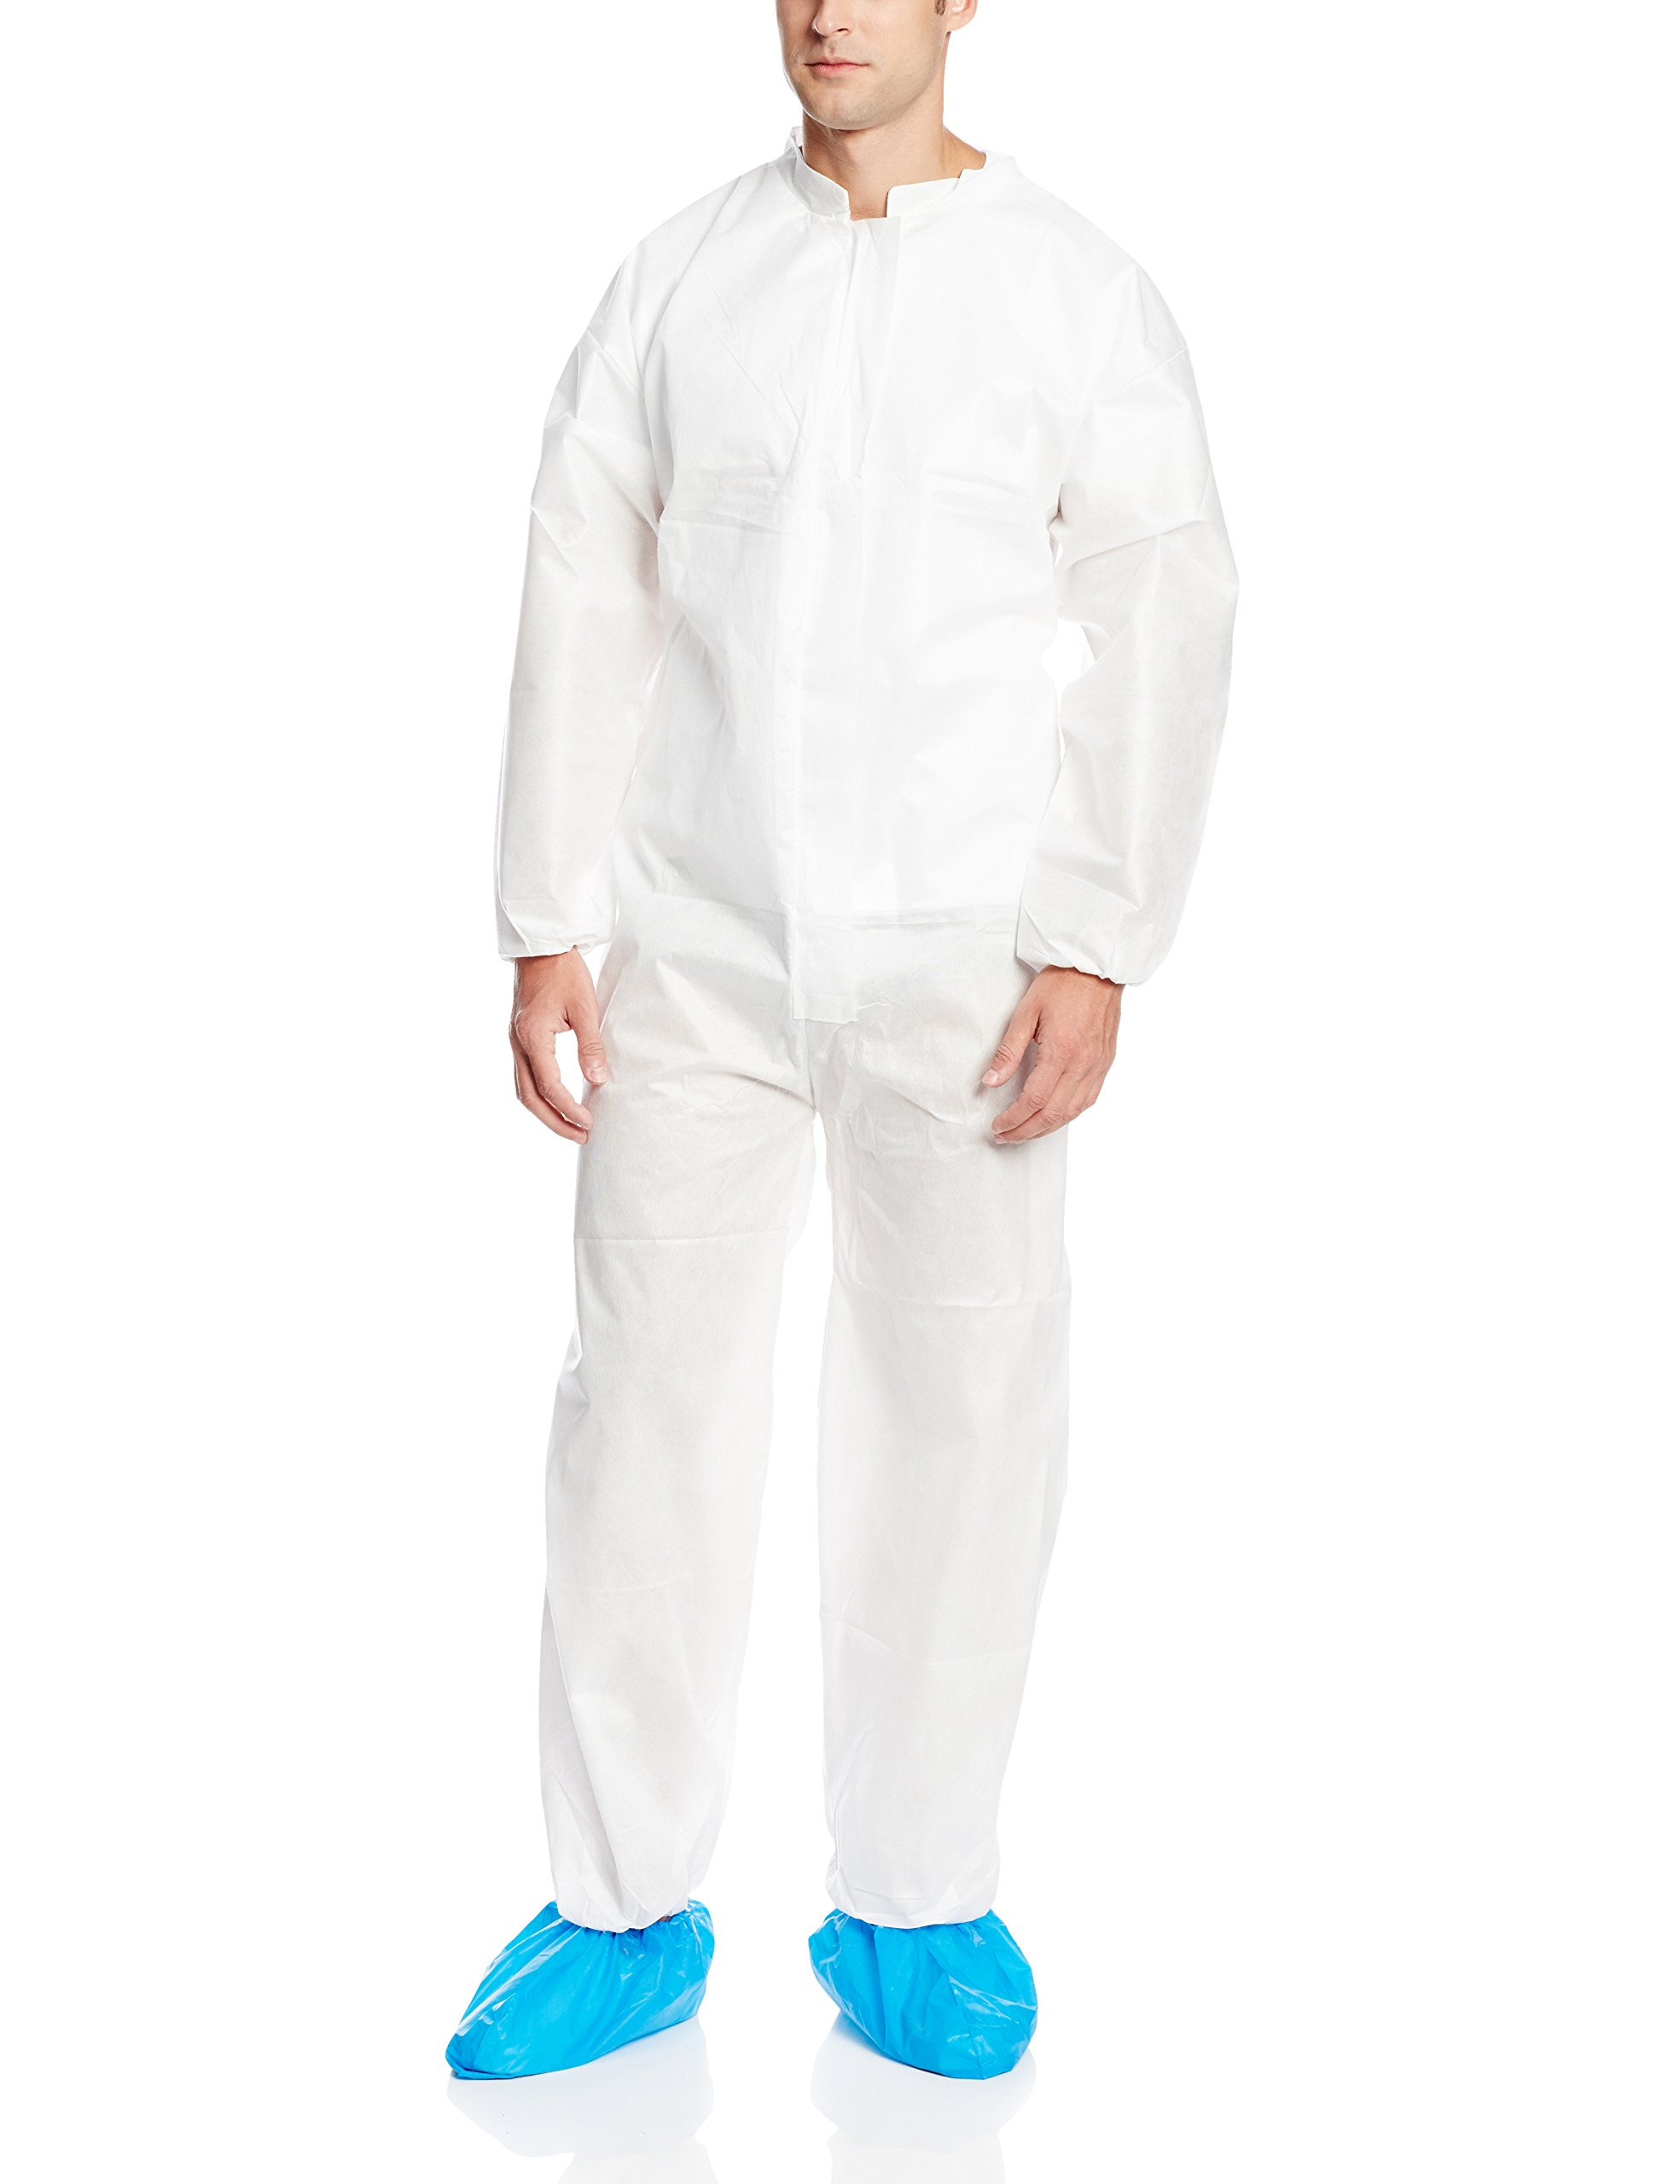 ValuMax 4802WHXL Ultra SMS Disposable Coverall, Fluid Resistant, Breathable, Elastic Cuffs and Ankles, White, XL, Case of 25 by Valumax (Image #1)